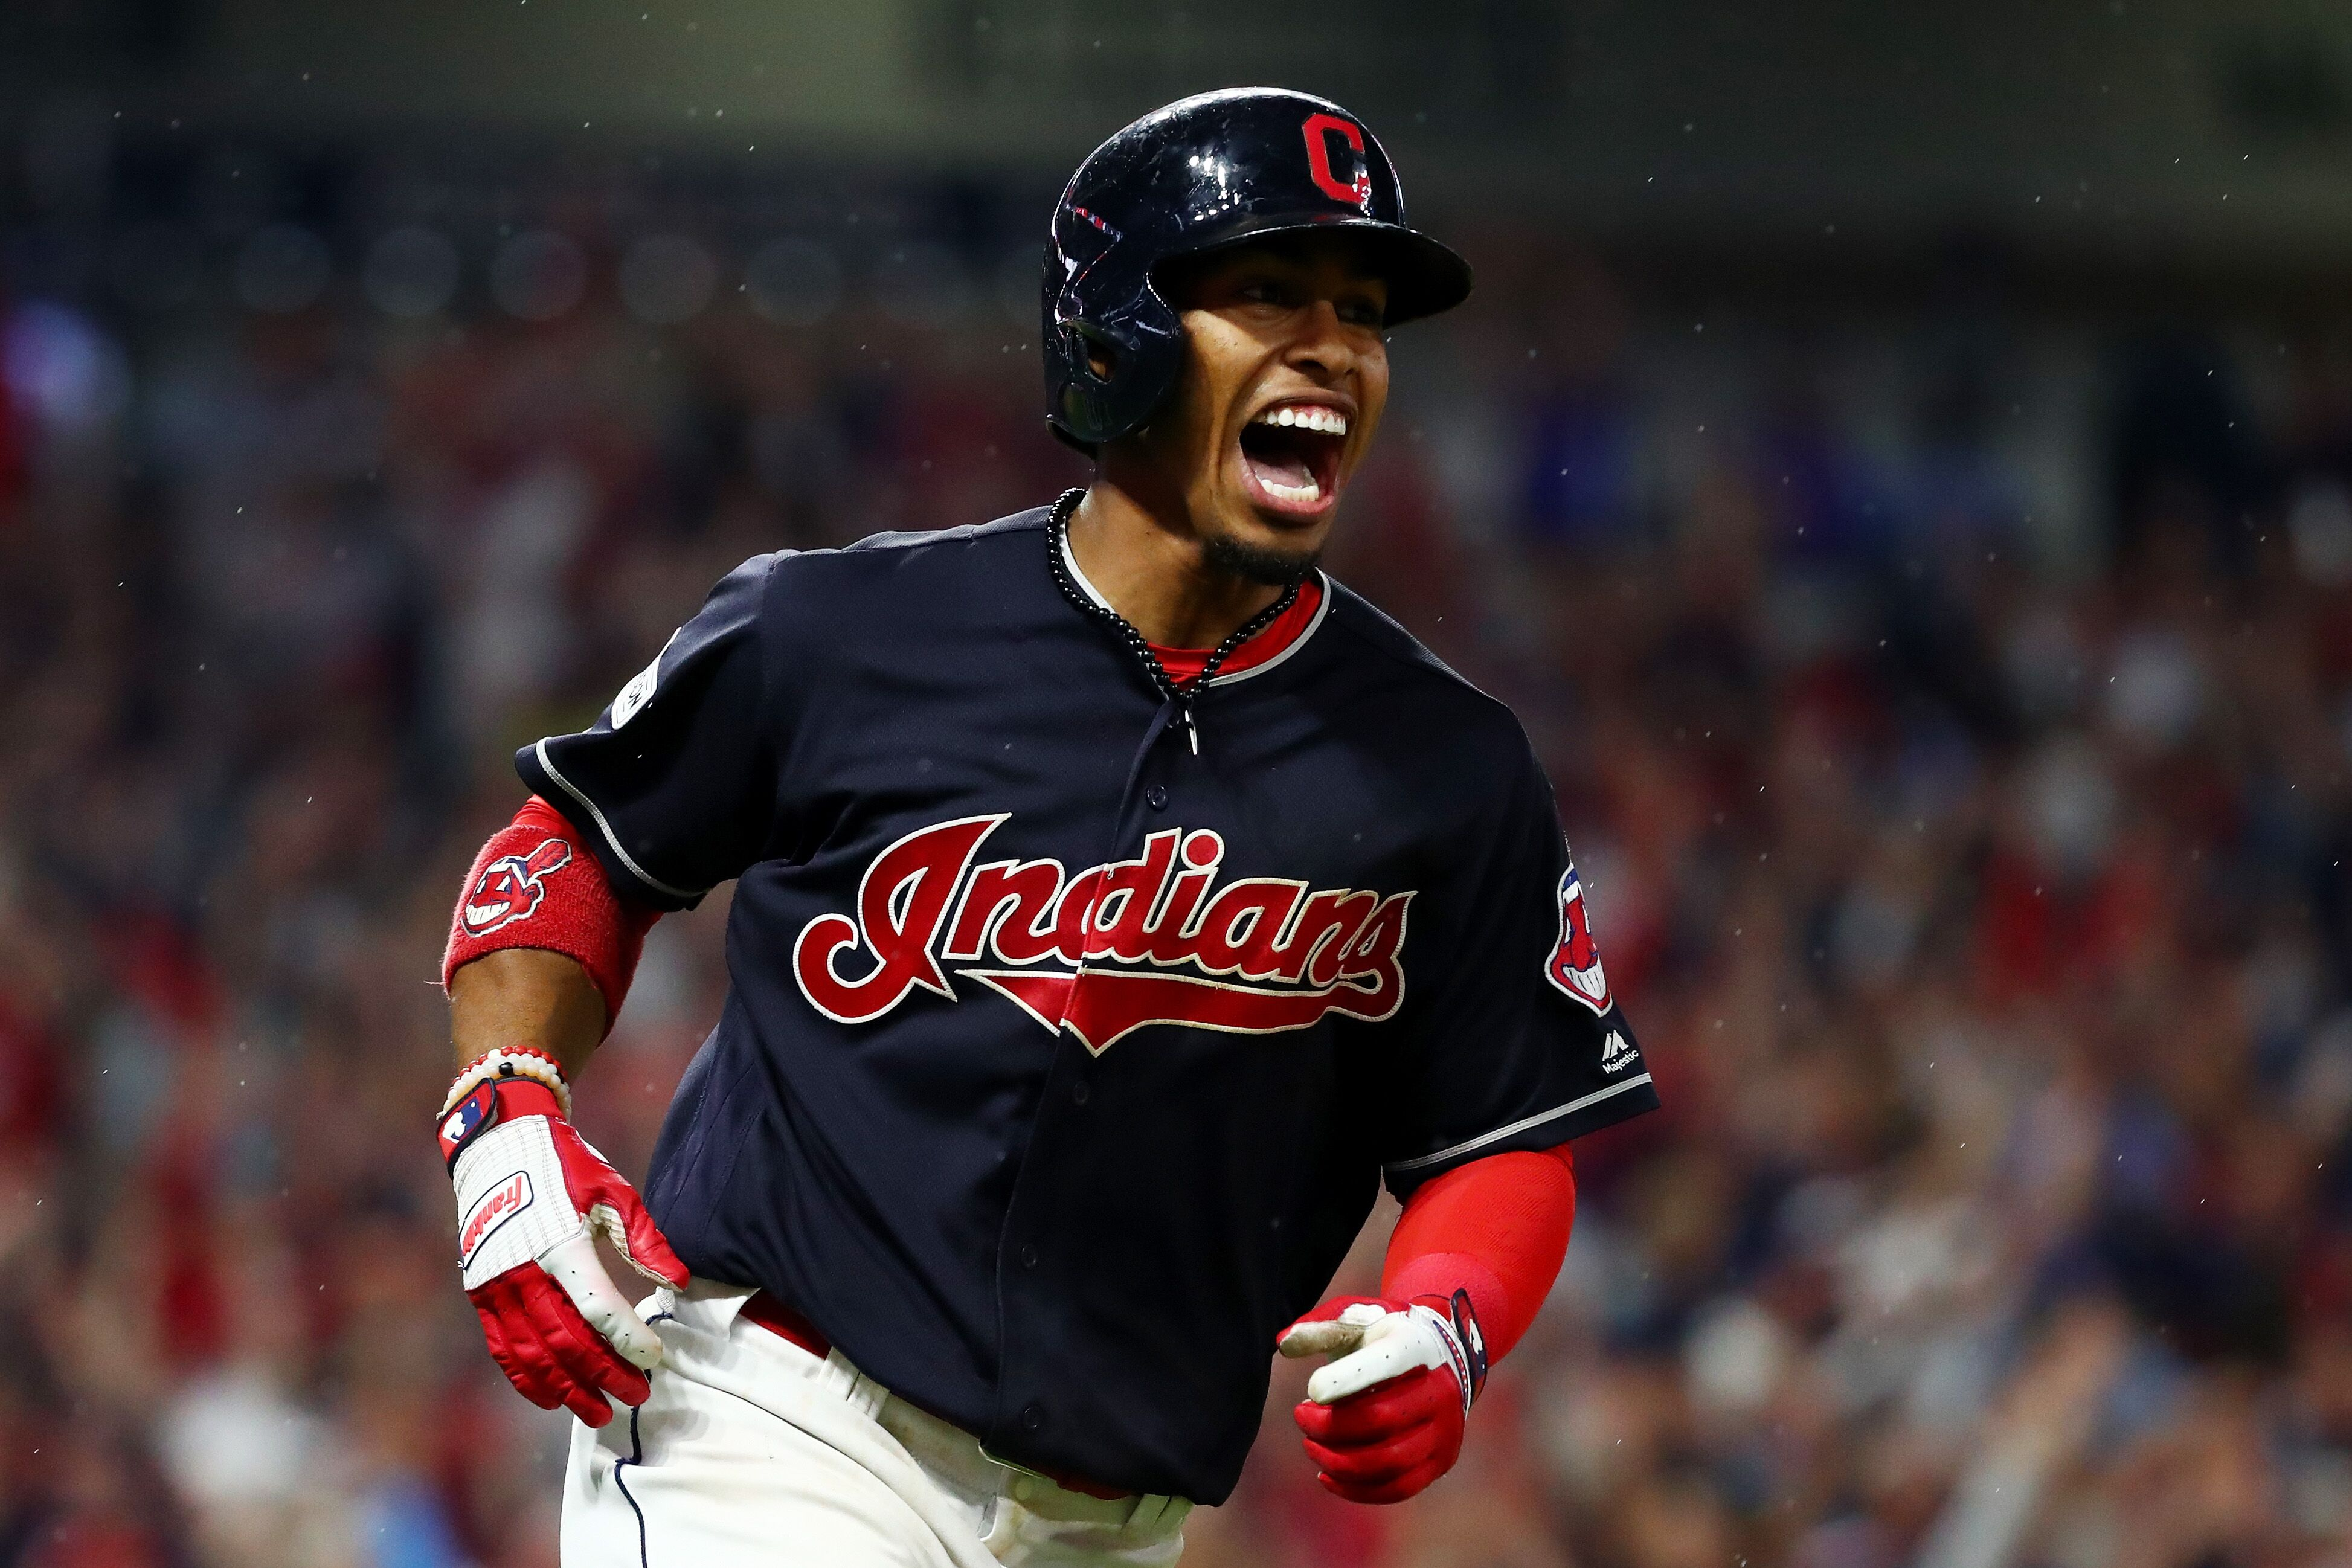 Try to love life as much as Francisco Lindor loves baseball